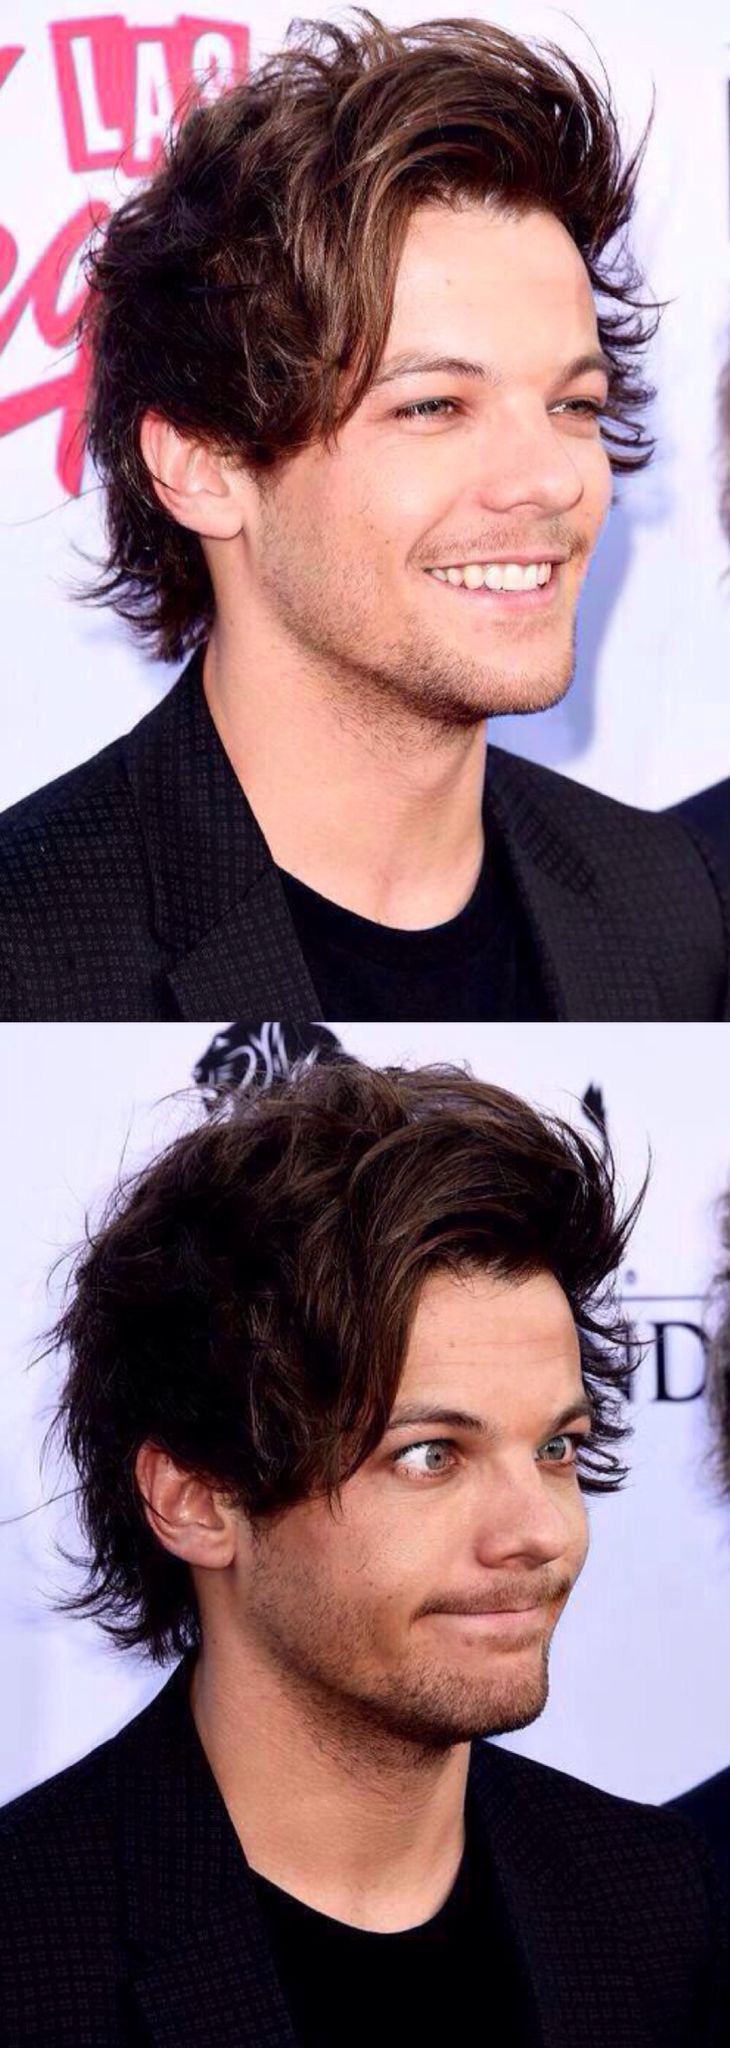 Louis tomlinson lets his hair down in manchester after splitting from - Louis Tomlinson Bbmas 2015 Tati1d5